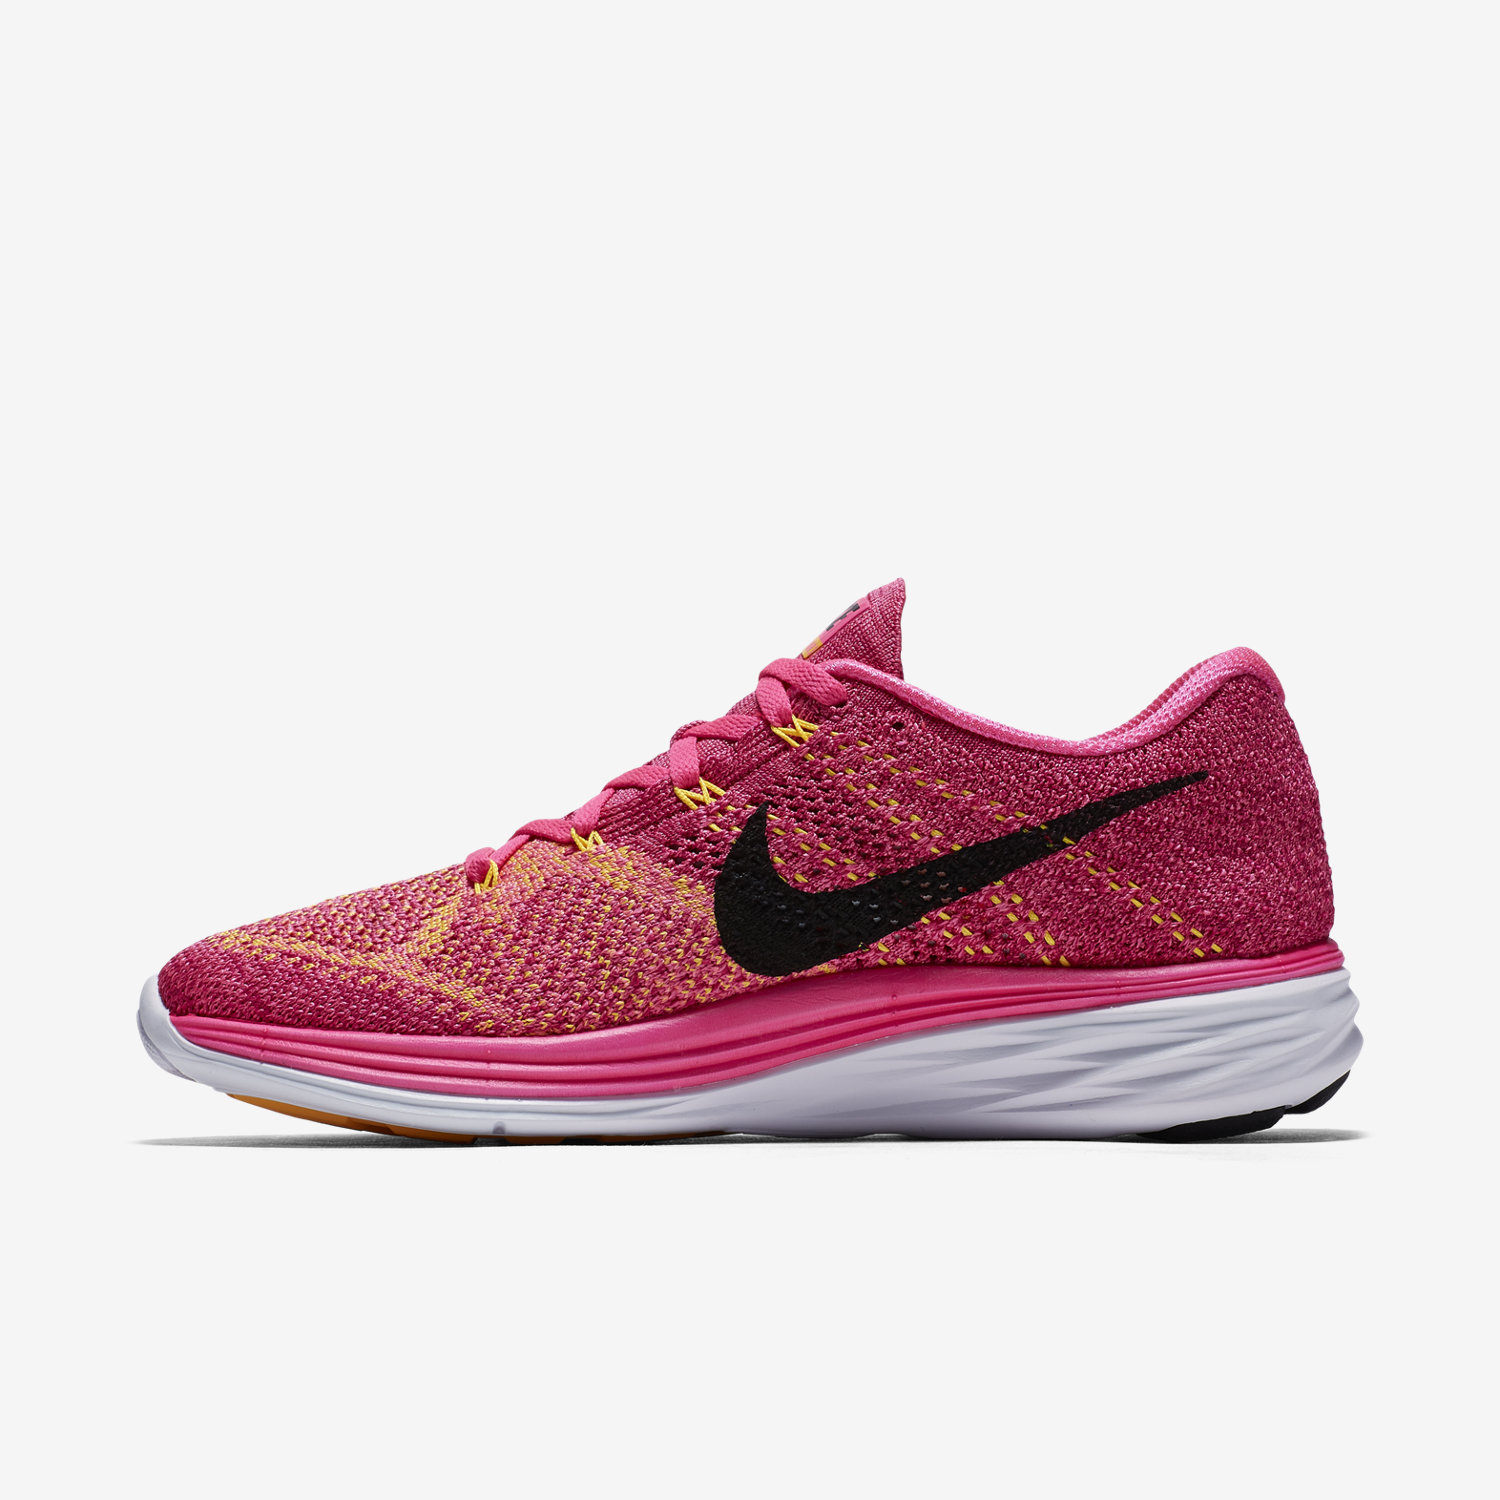 reputable site 03eb0 99ce6 ... womens nike flyknit lunar 3 gold orange . ...